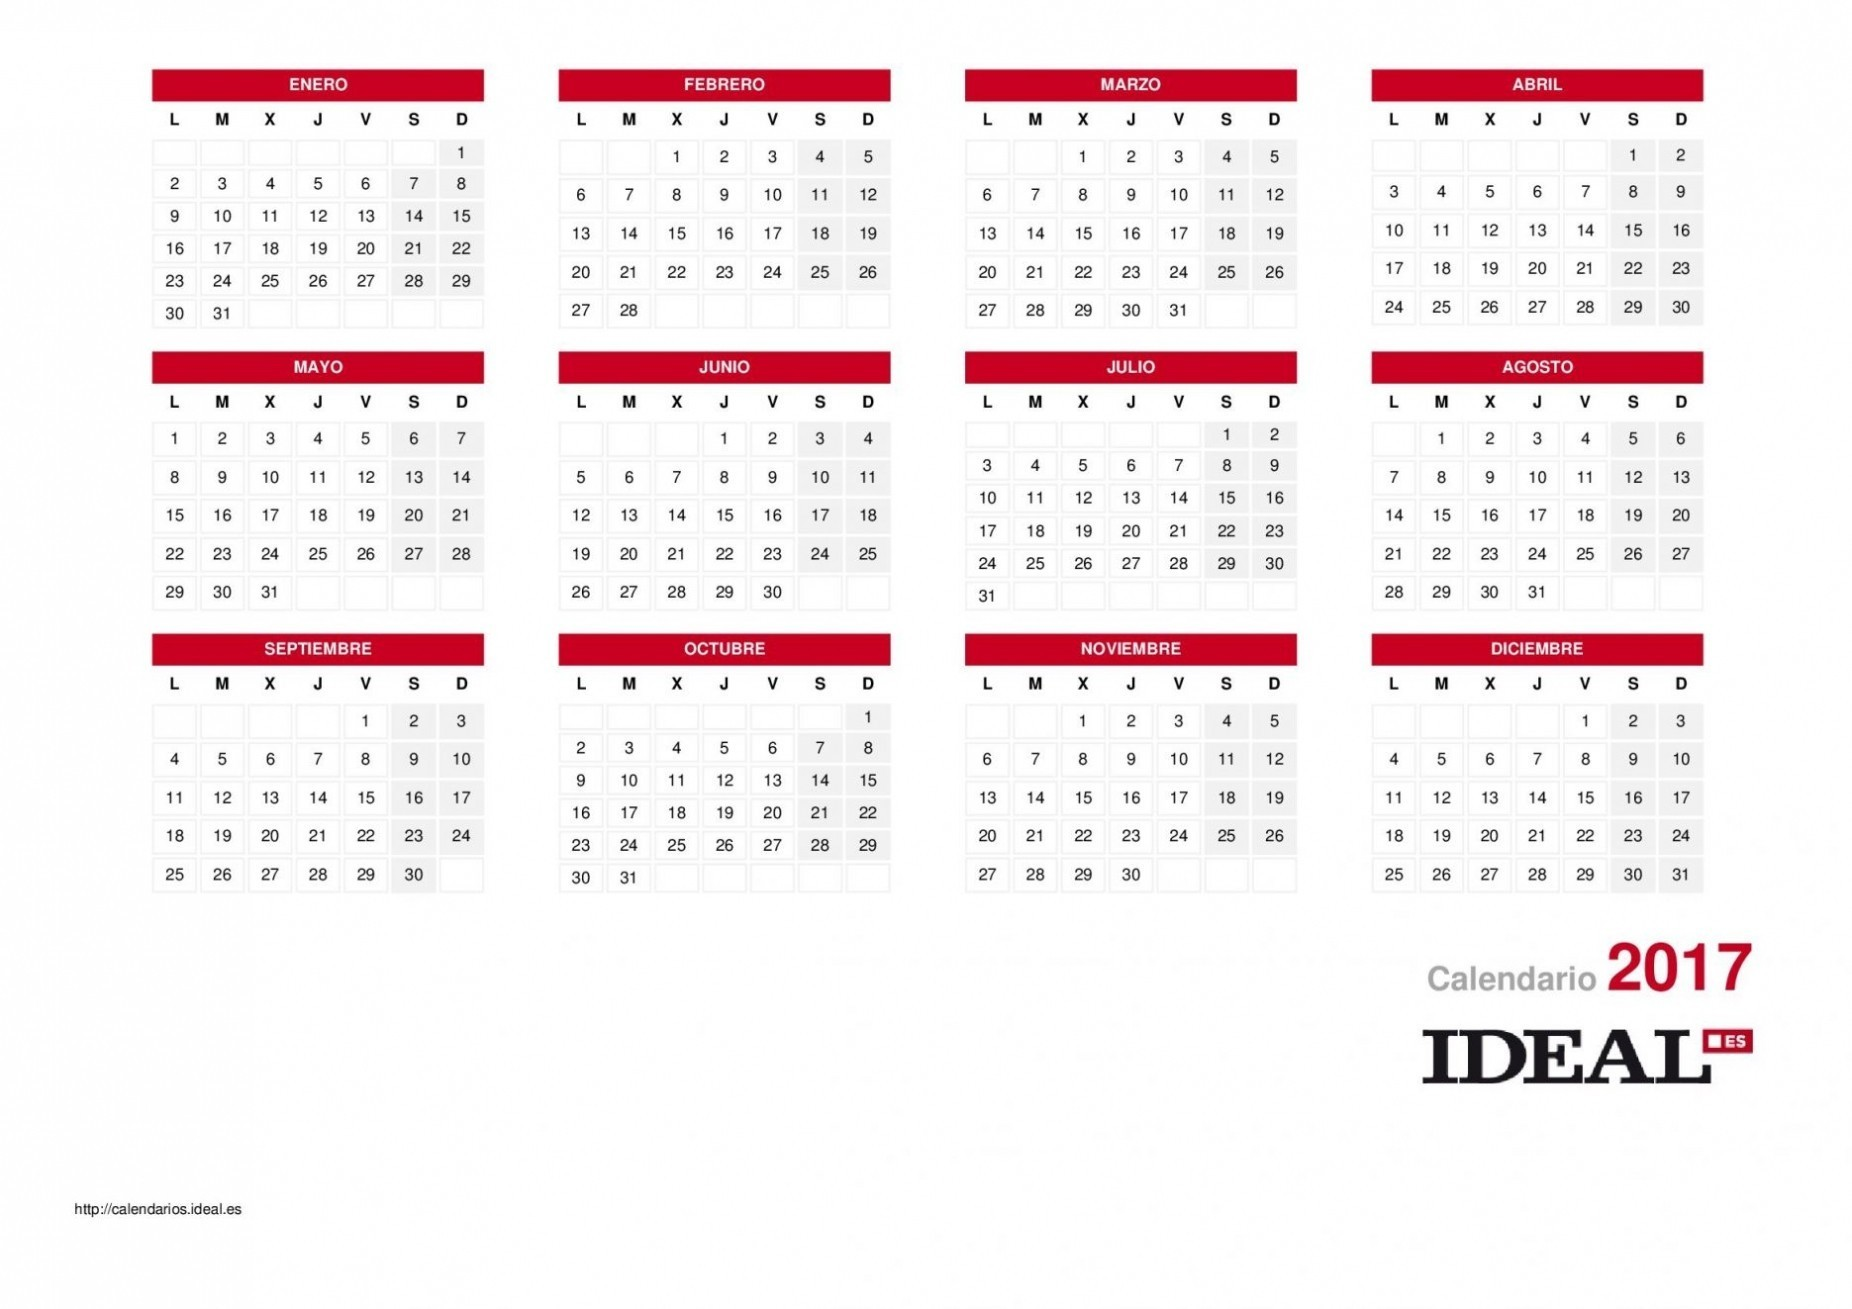 calendario 2019 colombia para imprimir word mas caliente observar calendario 2019 feriados colombia of calendario 2019 colombia para imprimir word